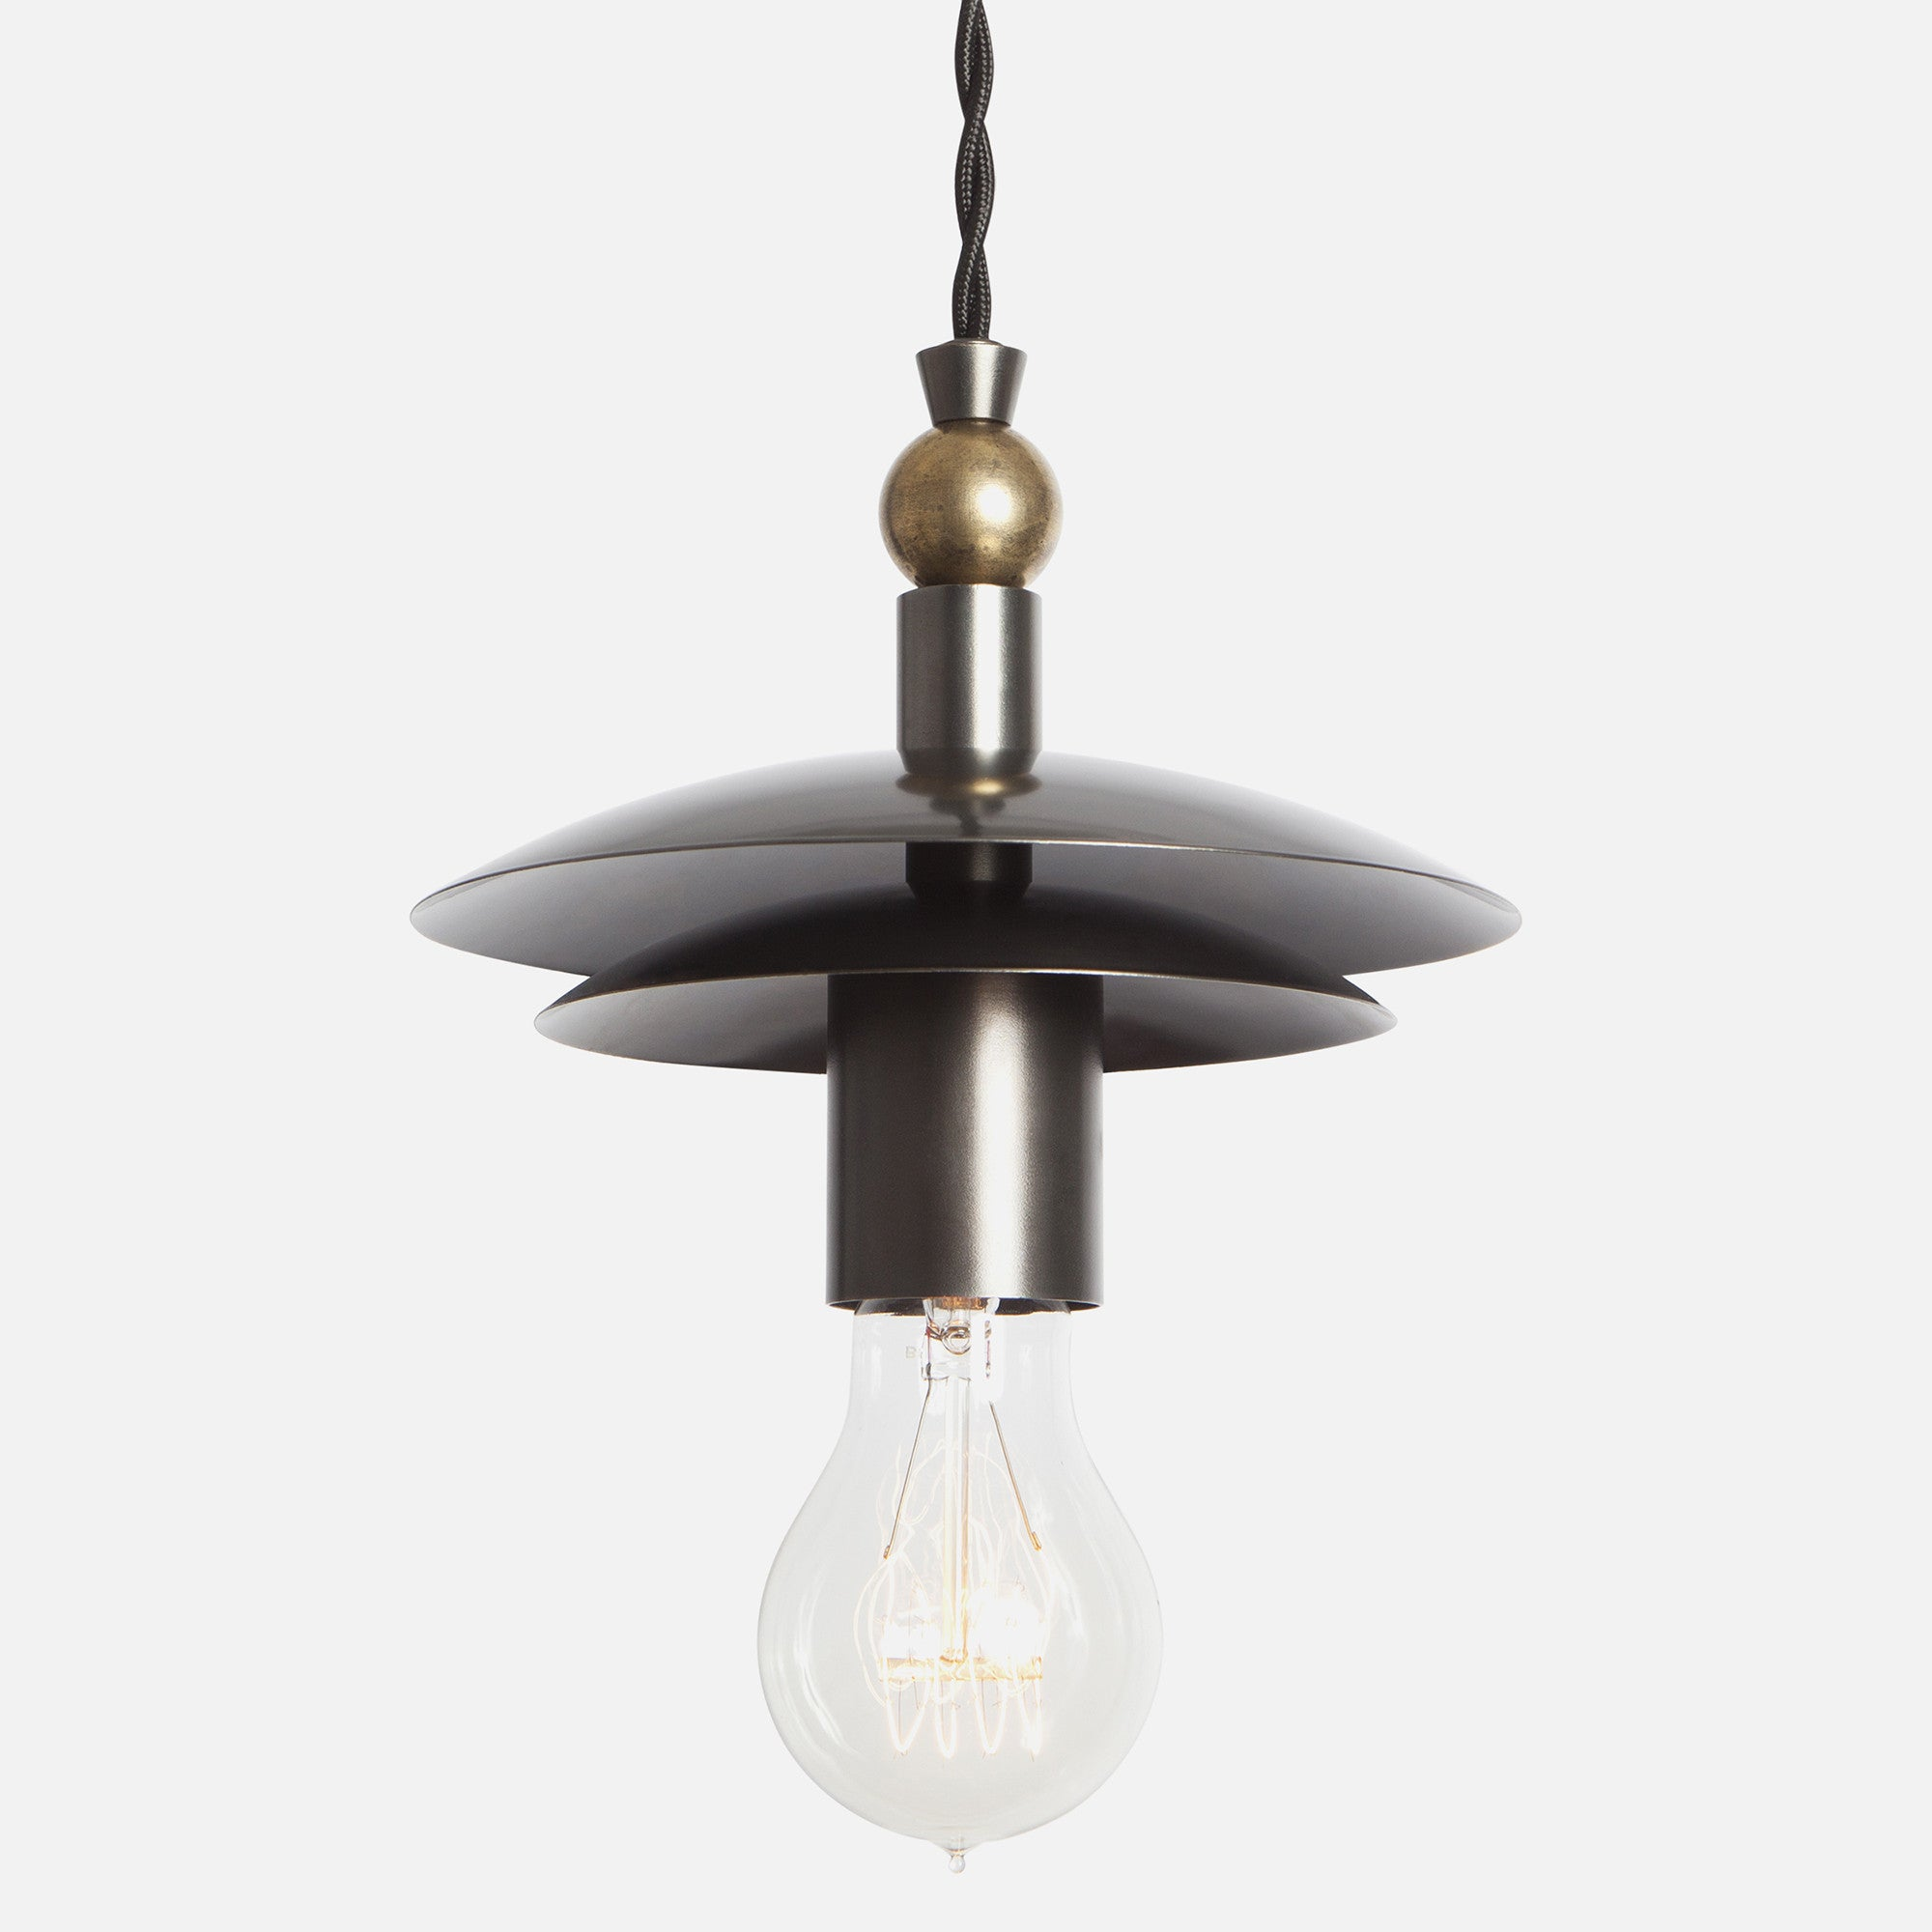 Brancusi Double Dome Pendant Light